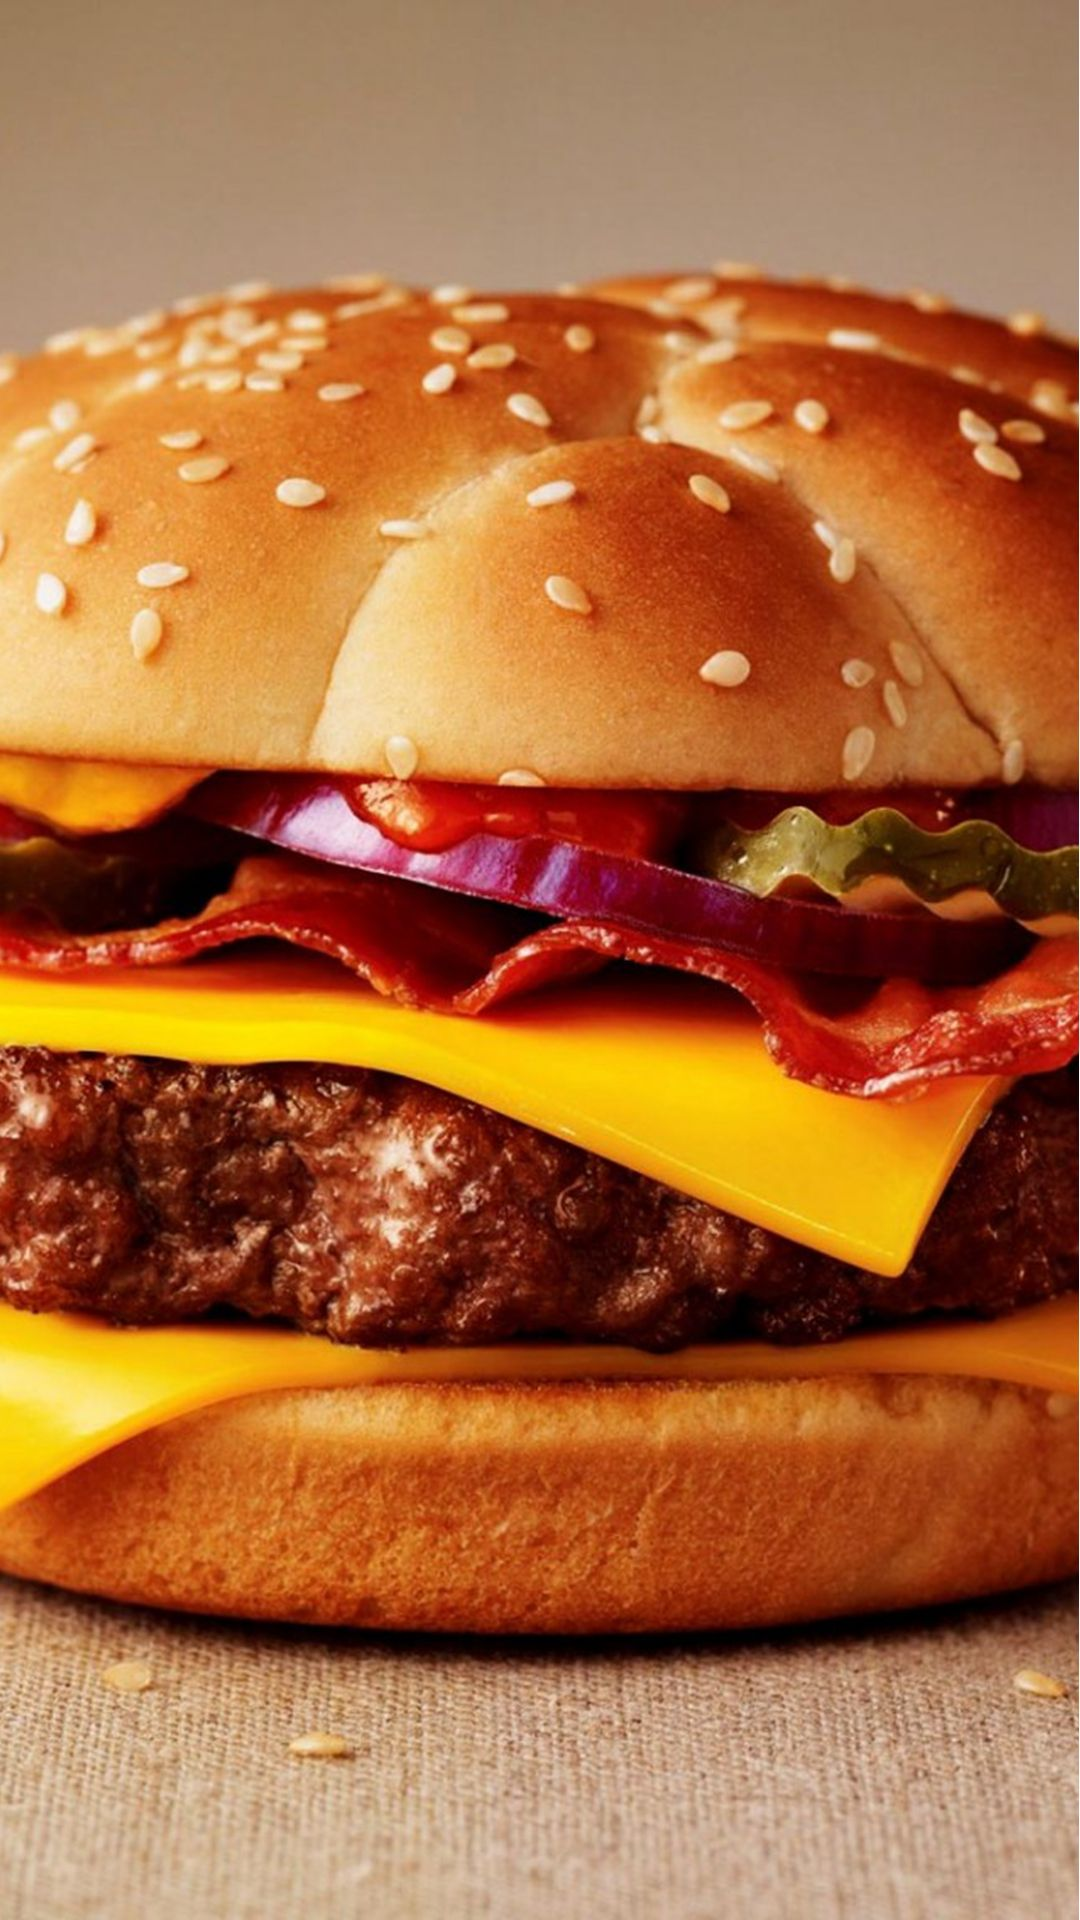 Cute Smelly Fast Food Cheeseburger #iPhone #6 #wallpaper